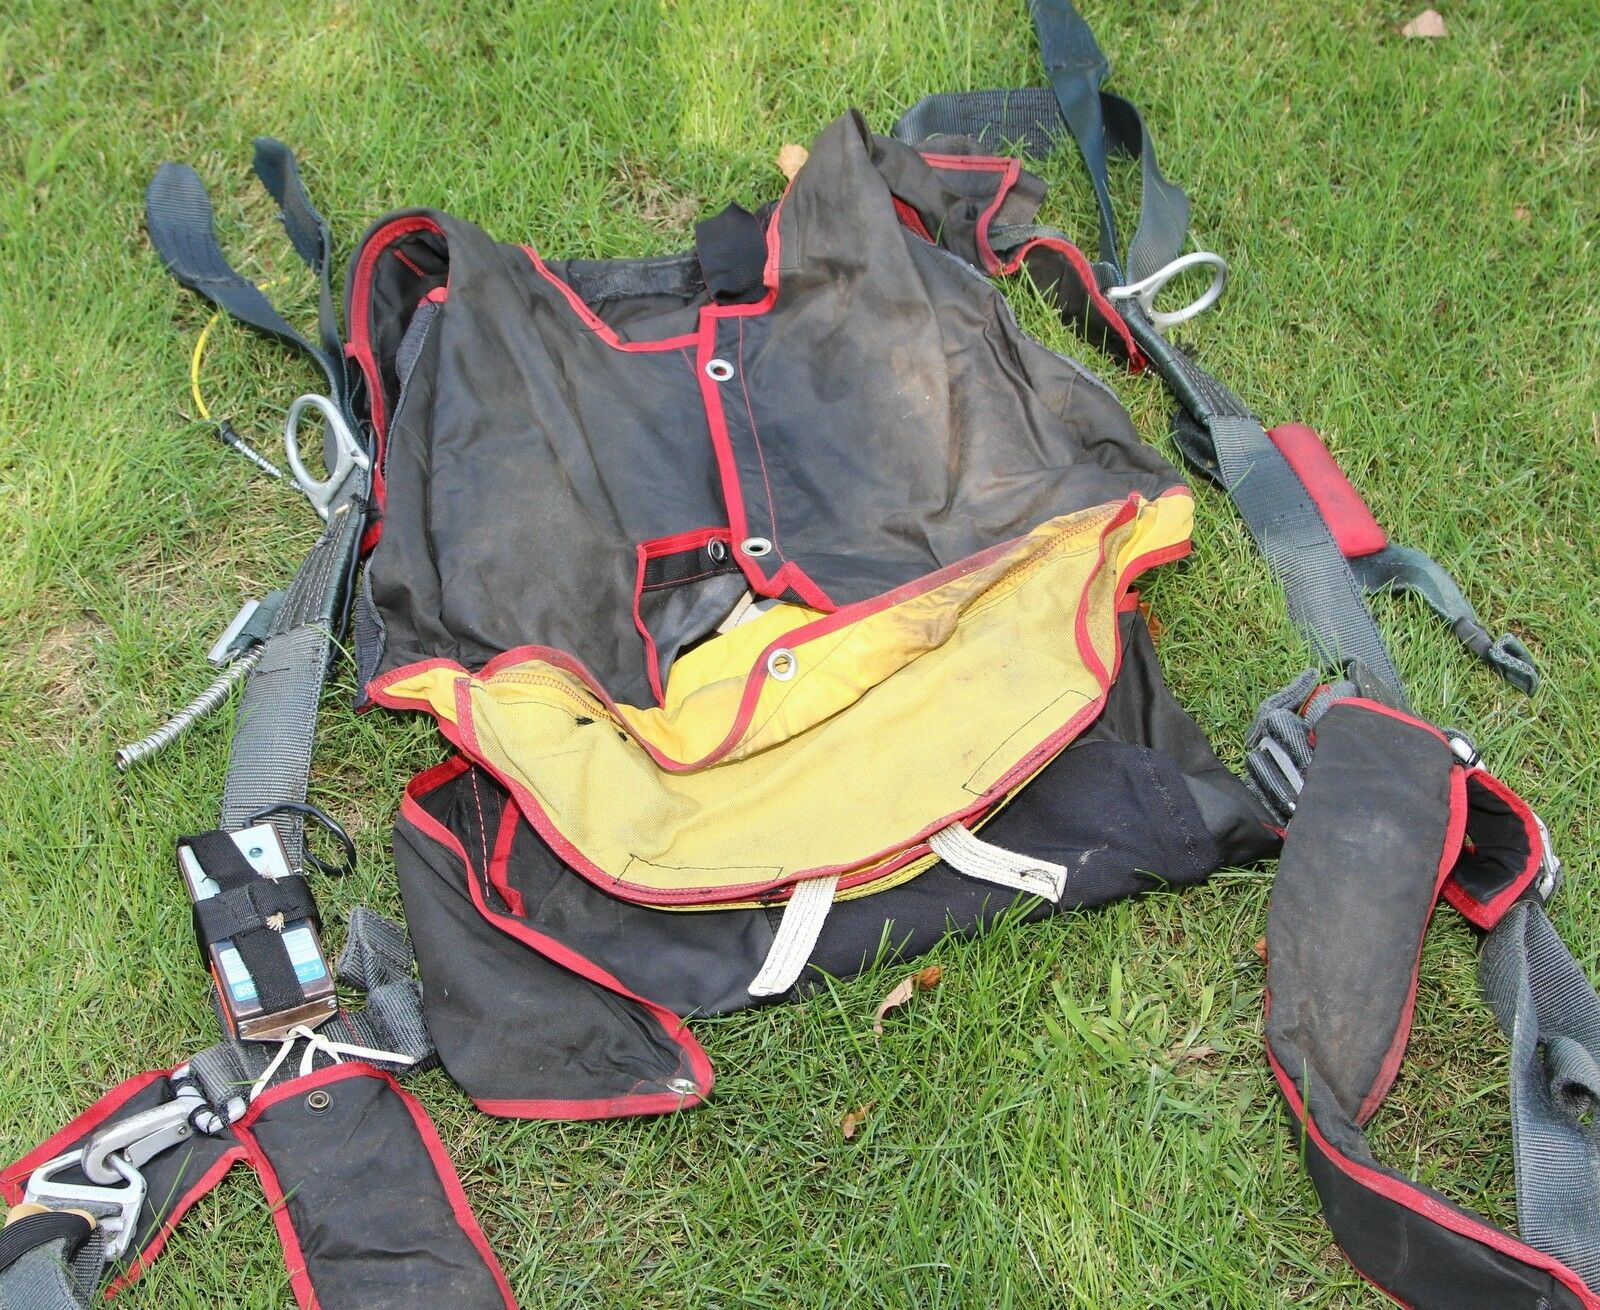 Racer SST old skydiving parachute harness container system  1986